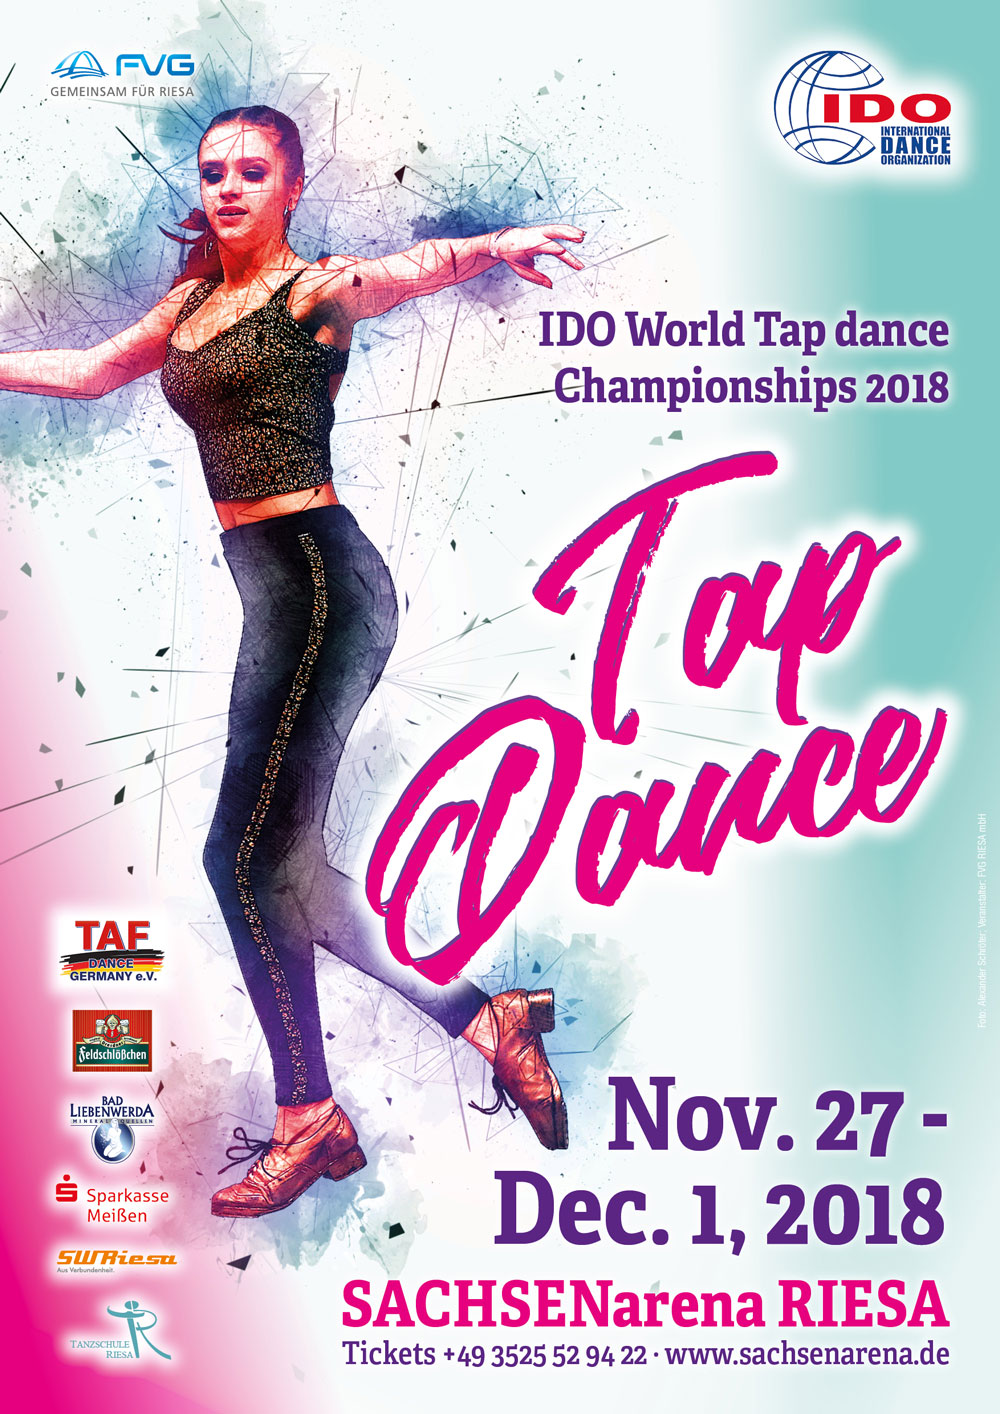 IDO - IDO WORLD TAP DANCE CHAMPIONSHIPS 2018, Germany